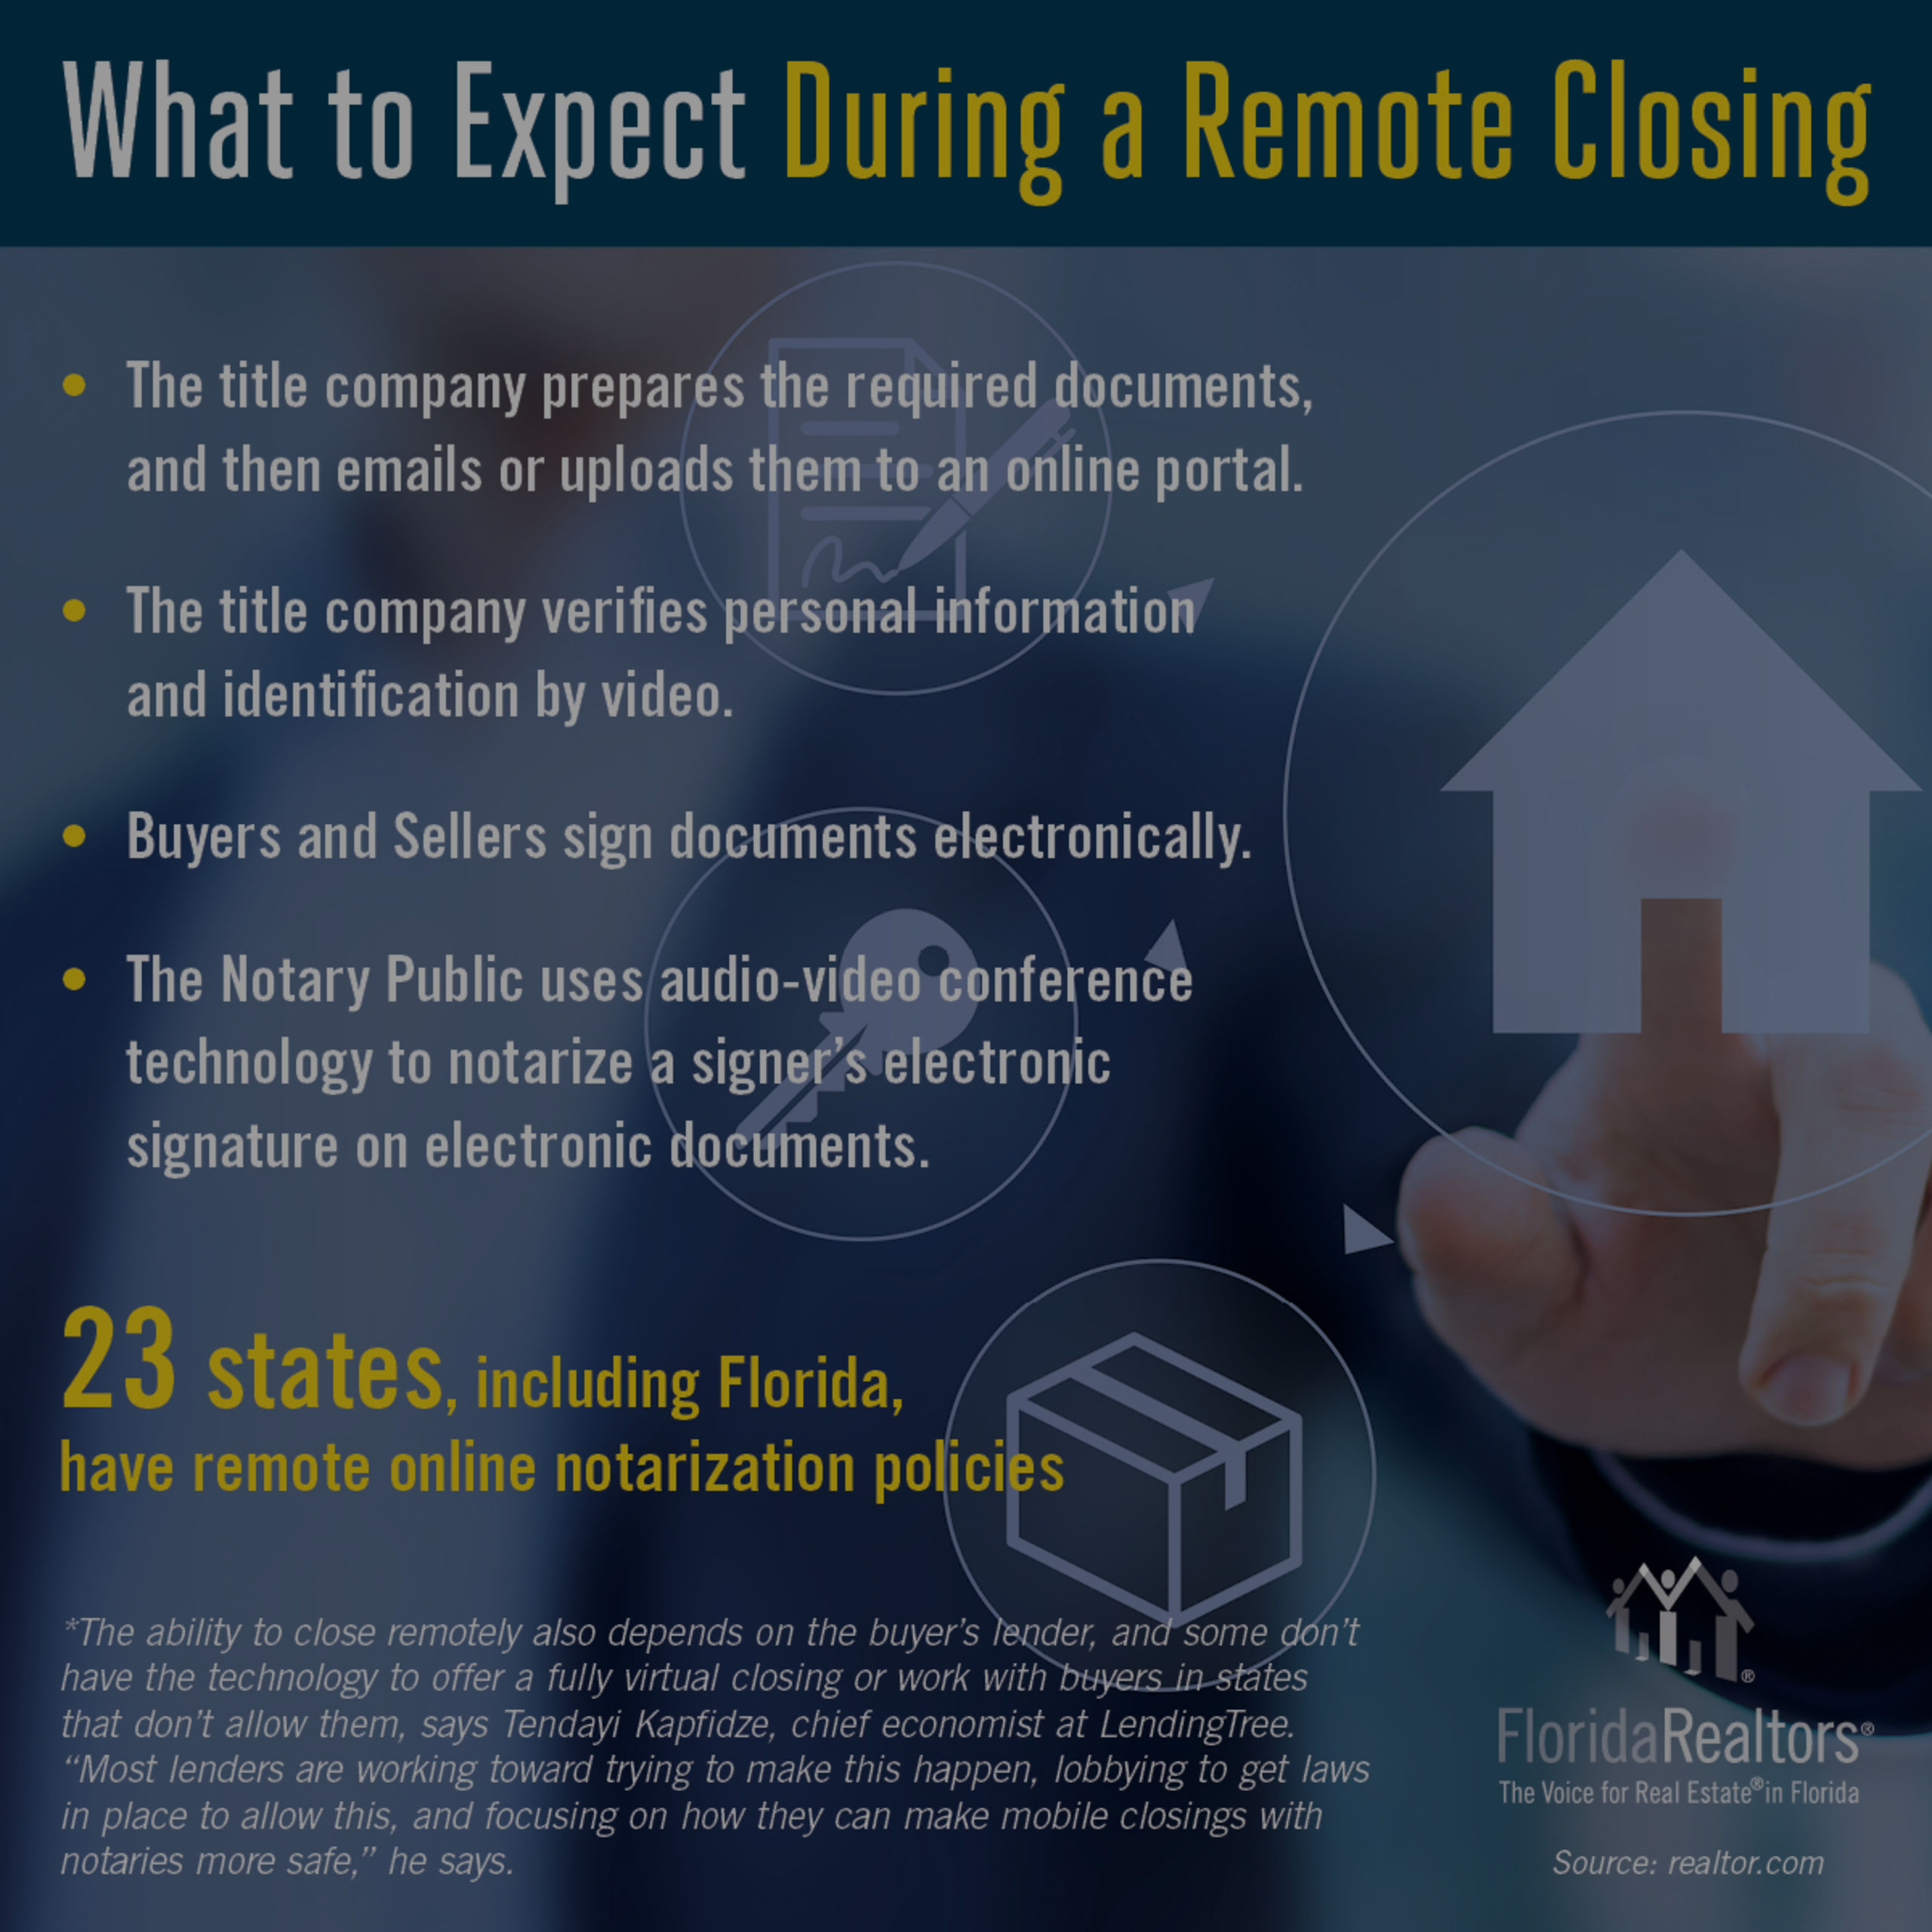 What to Expect During a Remote Closing